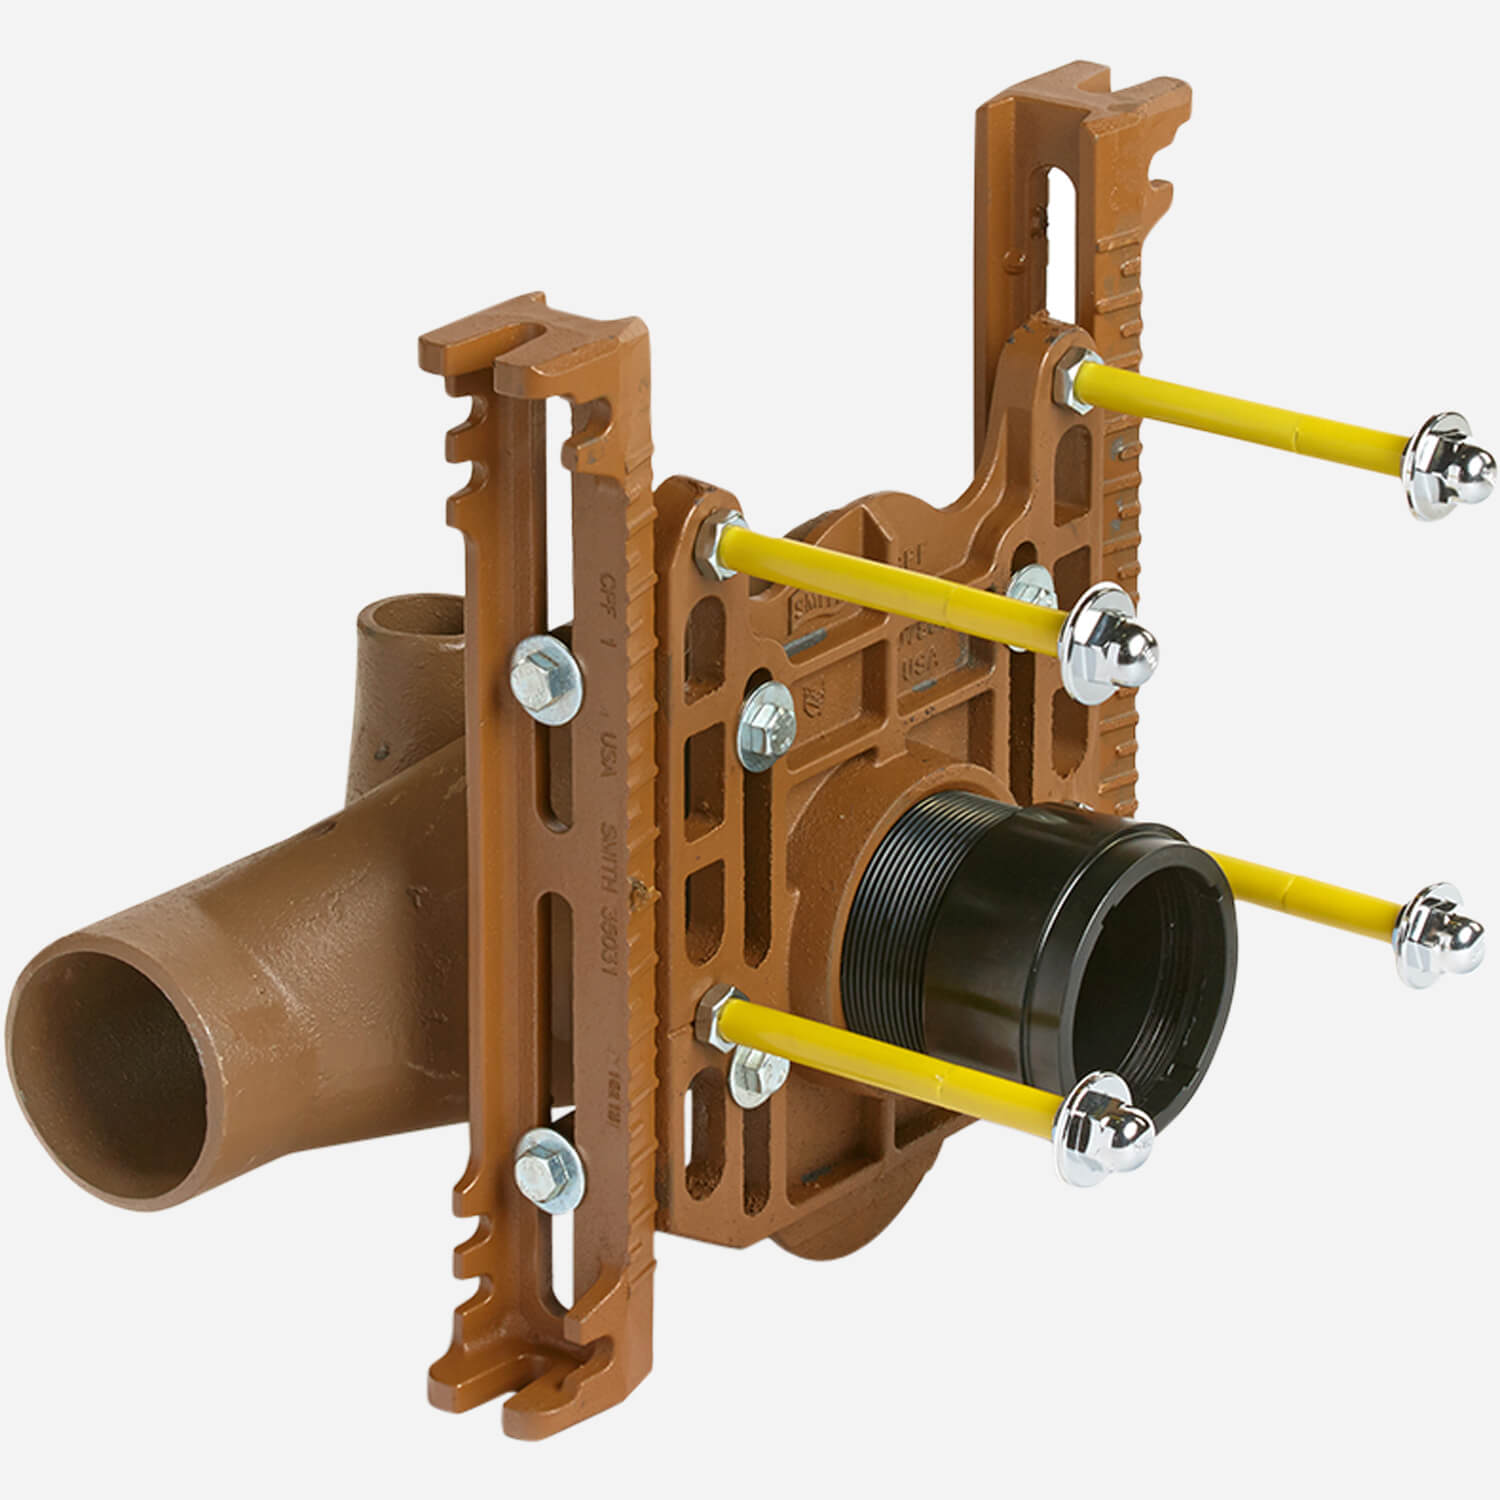 Adjustable Fixture Supports For Siphon Jet Water Closets